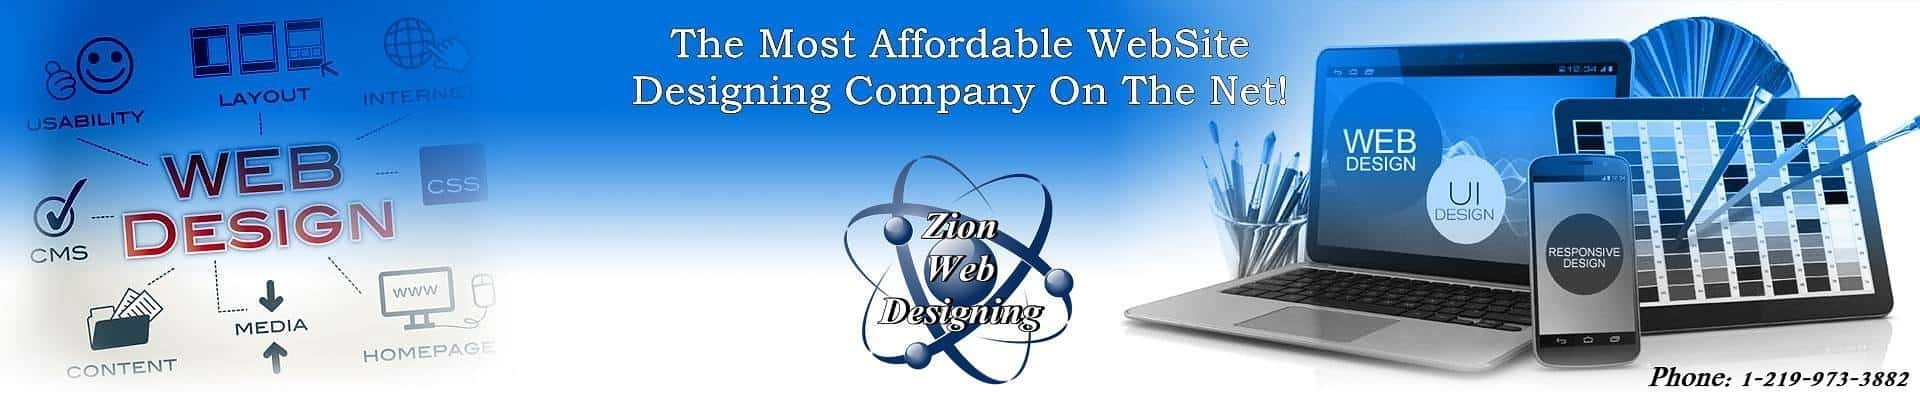 Web Design You Can Afford | Affordable Web Design